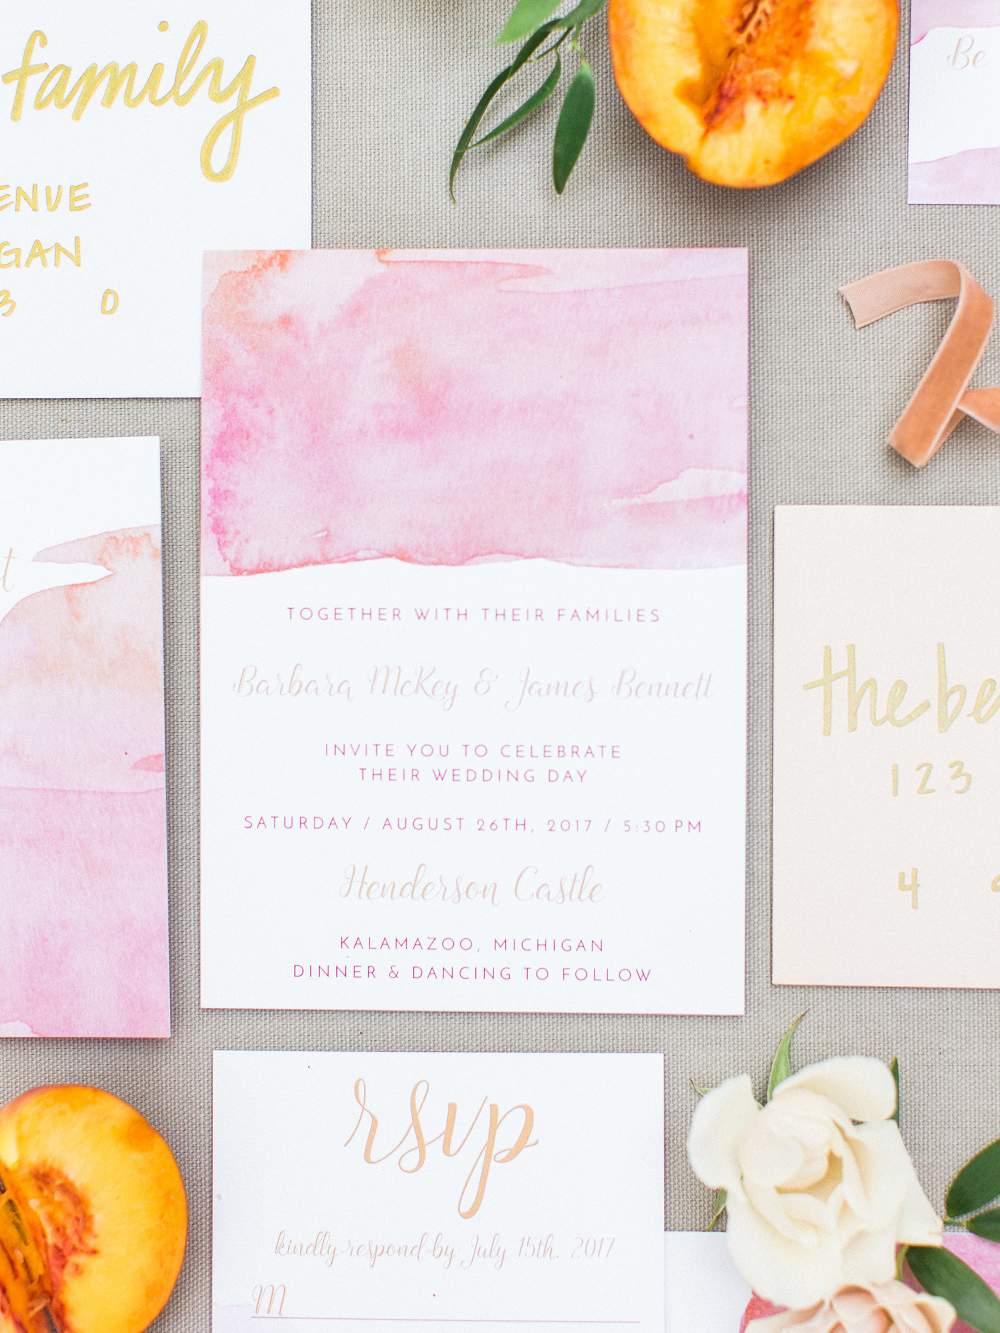 Whimsical Summer Wedding Styled Shoot at Henderson Castle Featured in WeddingDay Magazine Pink Watercolor